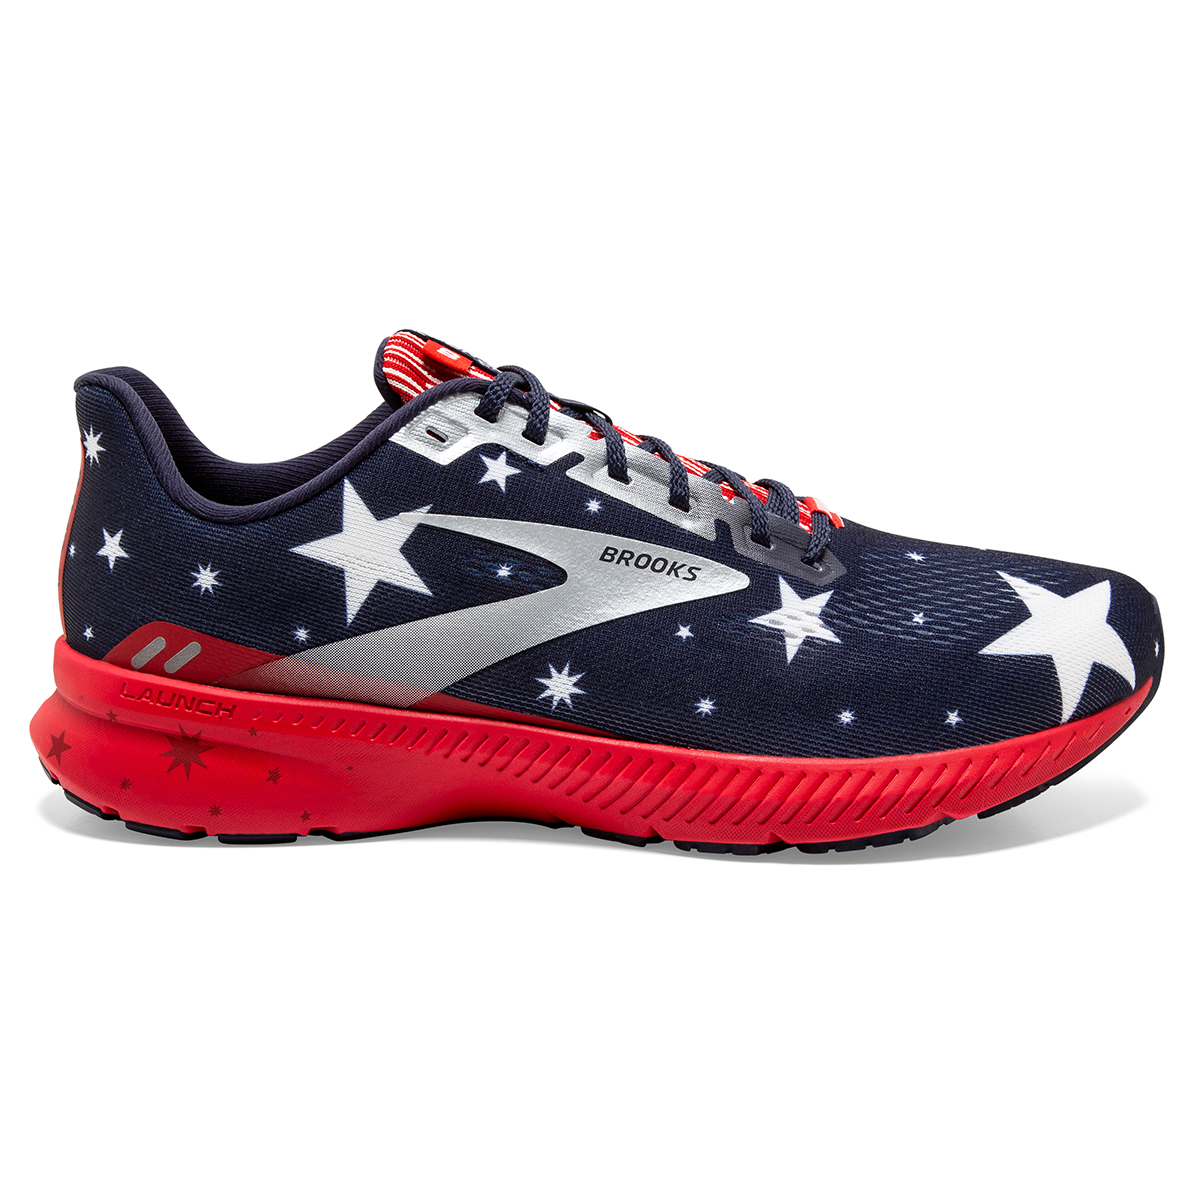 Men's Brooks Launch 8 Running Shoe - Color: Blue/Red/Silver - Size: 7 - Width: Regular, Blue/Red/Silver, large, image 1